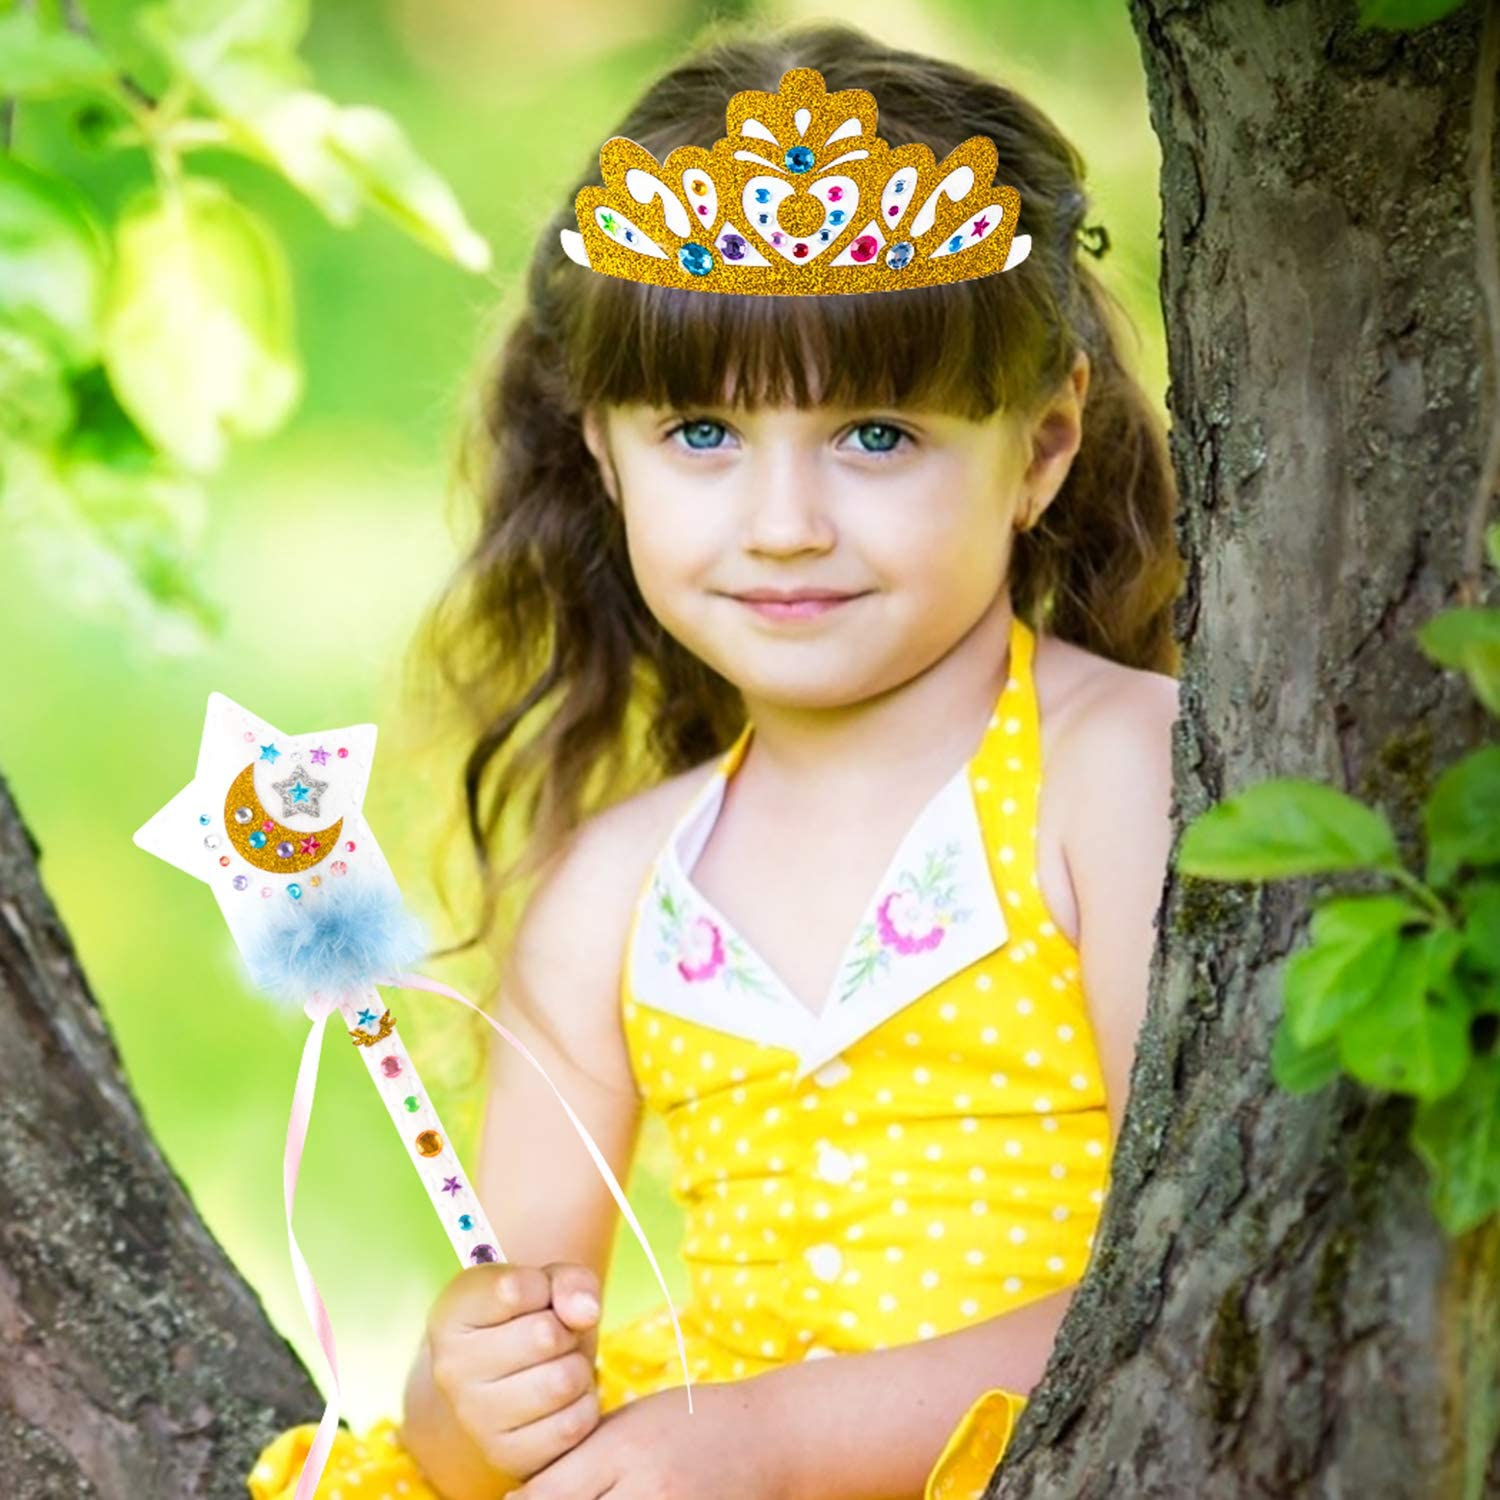 WATINC 18Pcs Make Your Own Princess Wand Craft/Kit DIY/Projects Sewing Kits Glitter Tiara Crowns Fairy Wands Jewel Bracelet Set Princess Toys Pretend Play Party Supplies Gifts for Little Girls